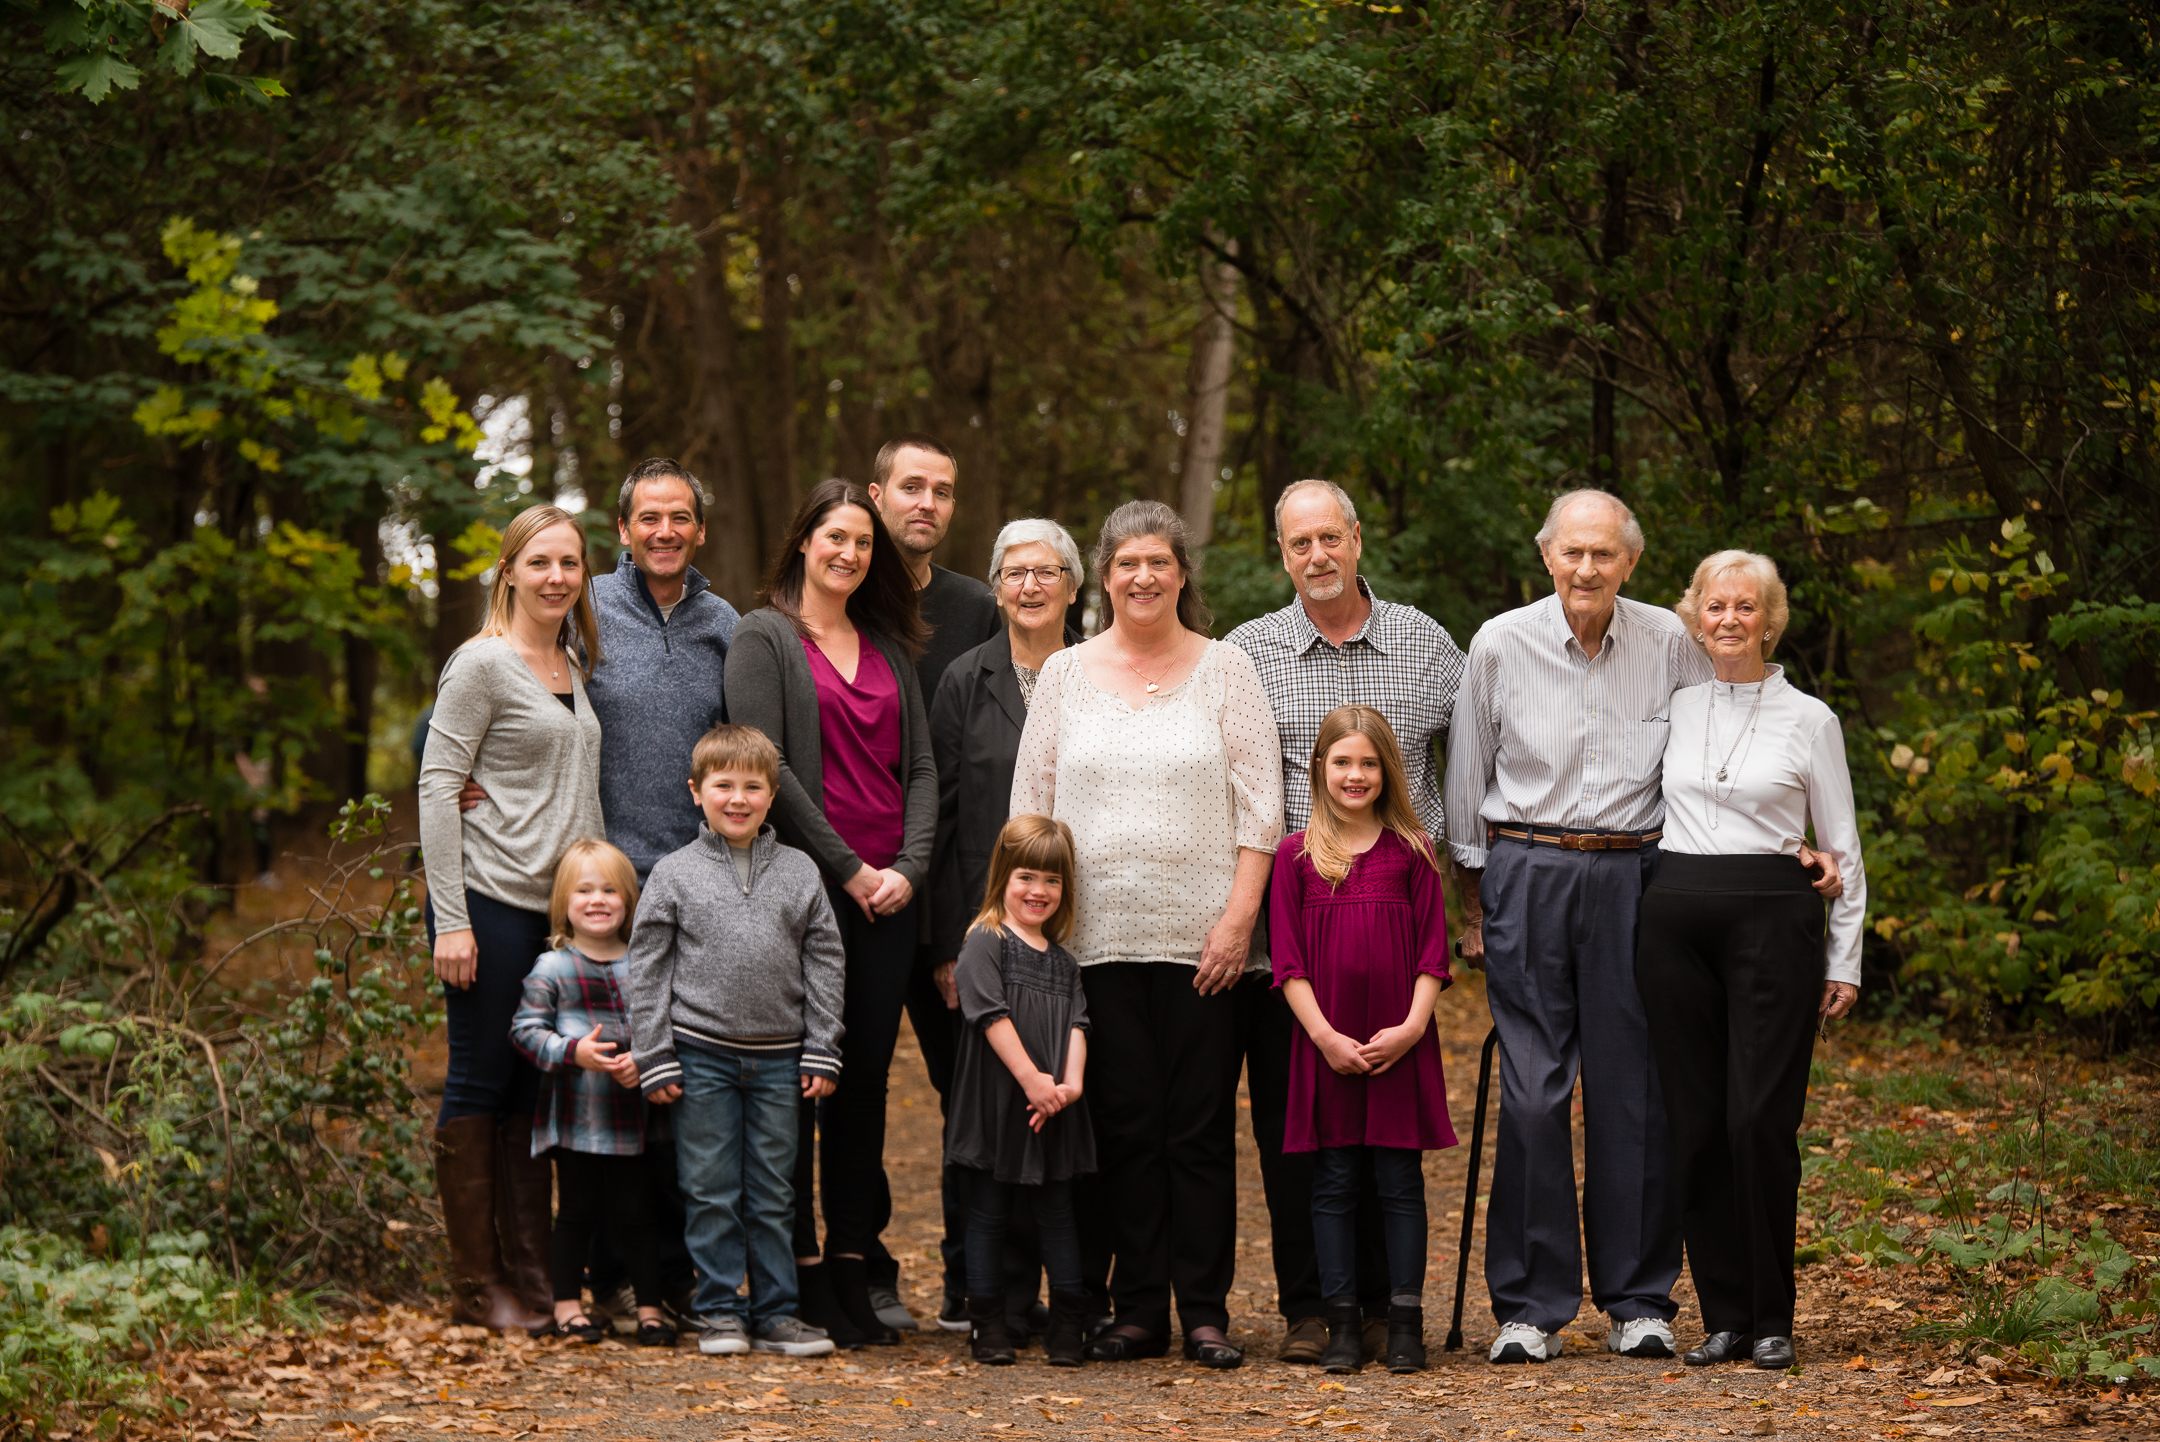 Naomi Lucienne Photography - Extended Family - 171007.jpg